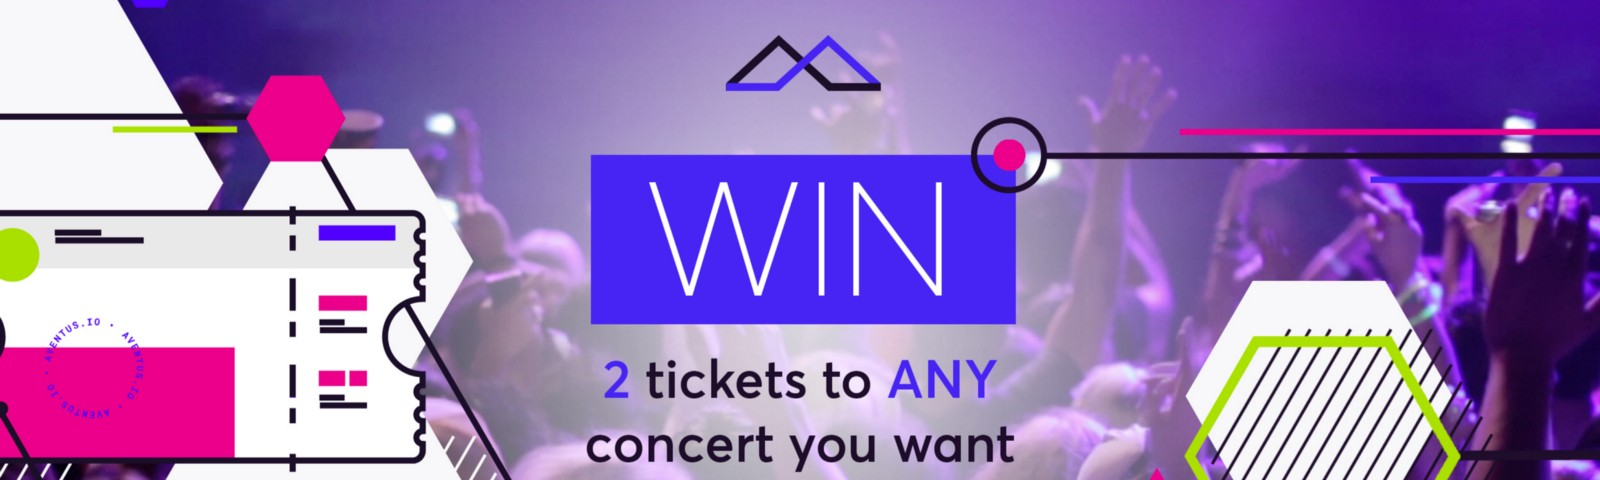 WeAreAventus: Join us and win tickets to the festival or